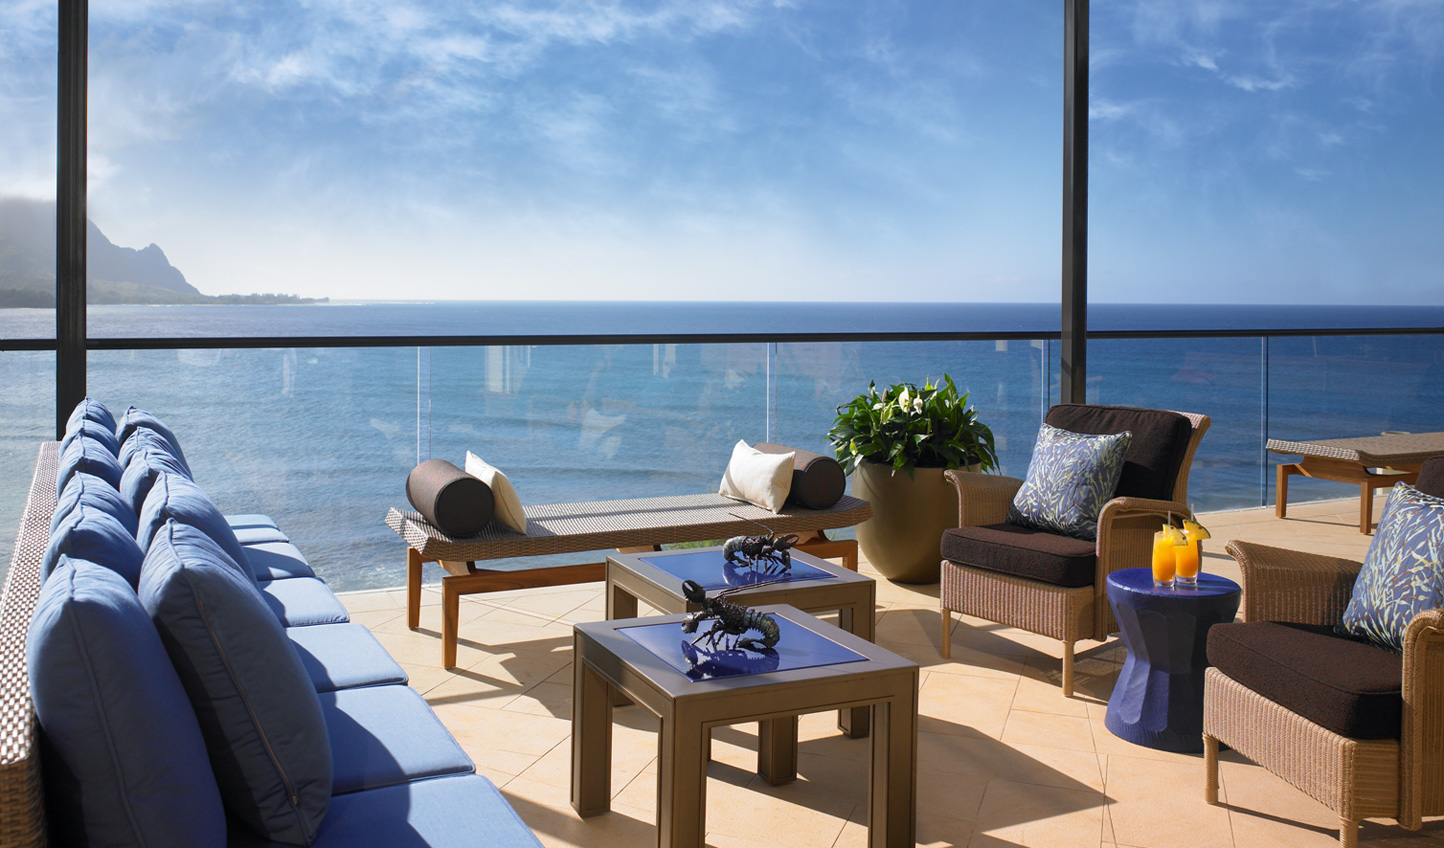 Sit back and enjoy blissful ocean views